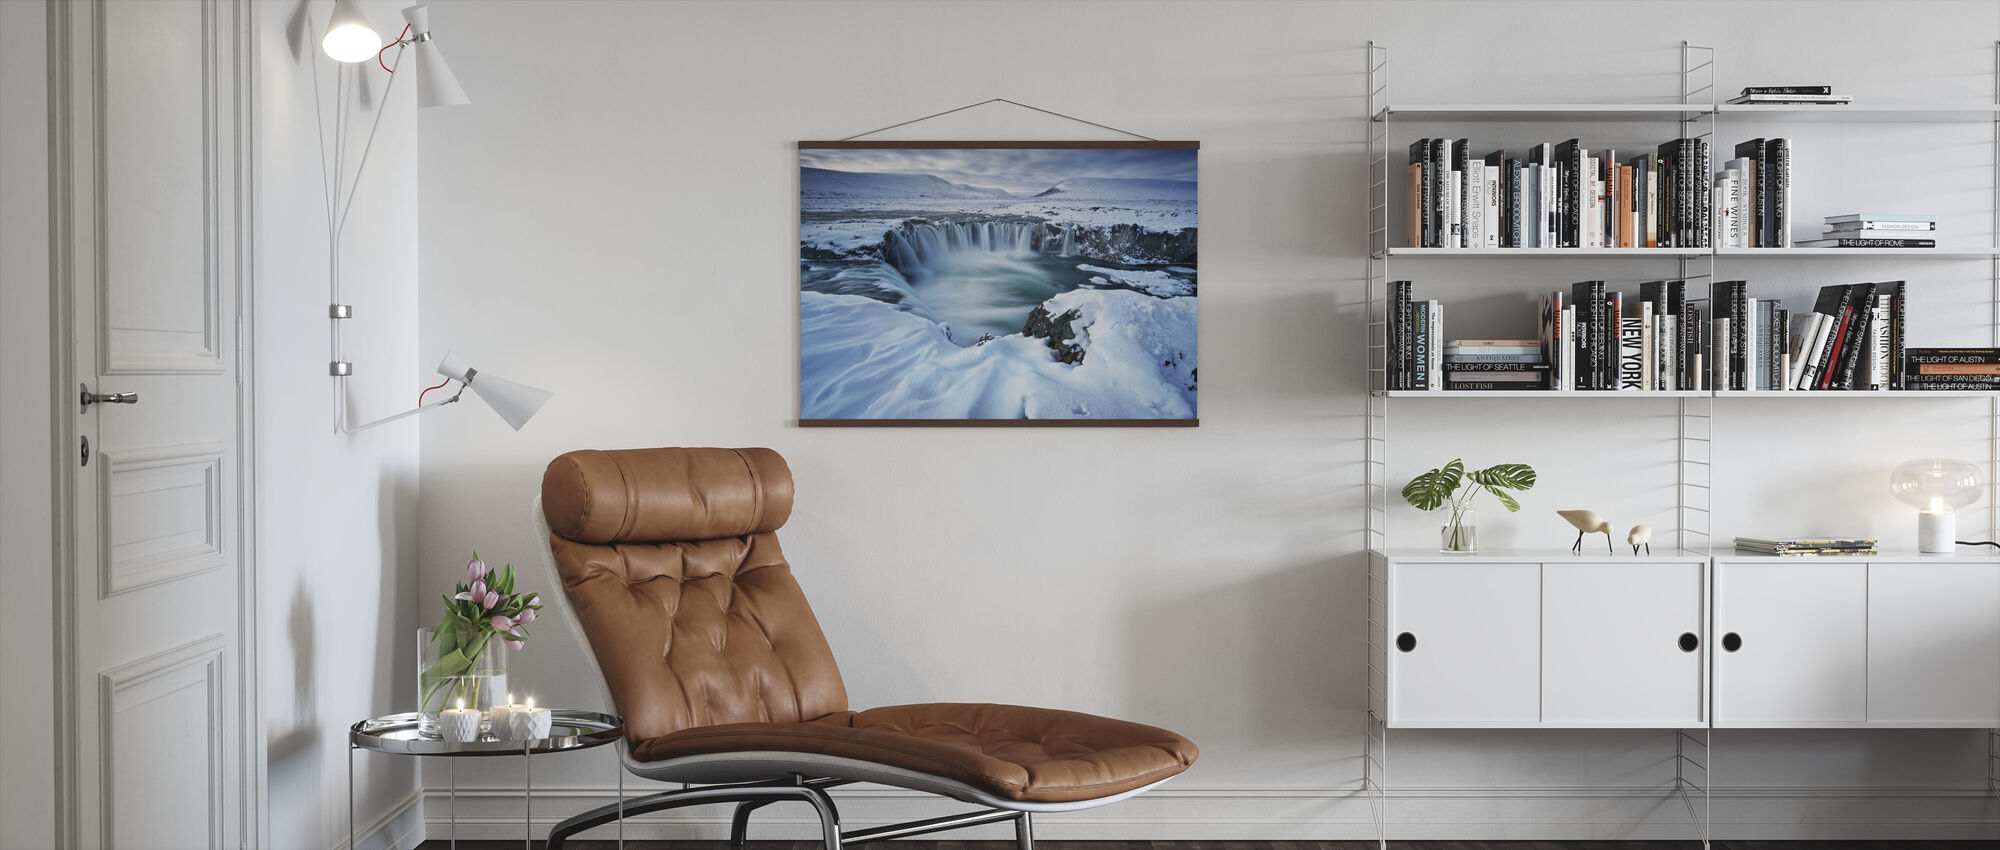 Waterfall of the Gods - Poster - Living Room